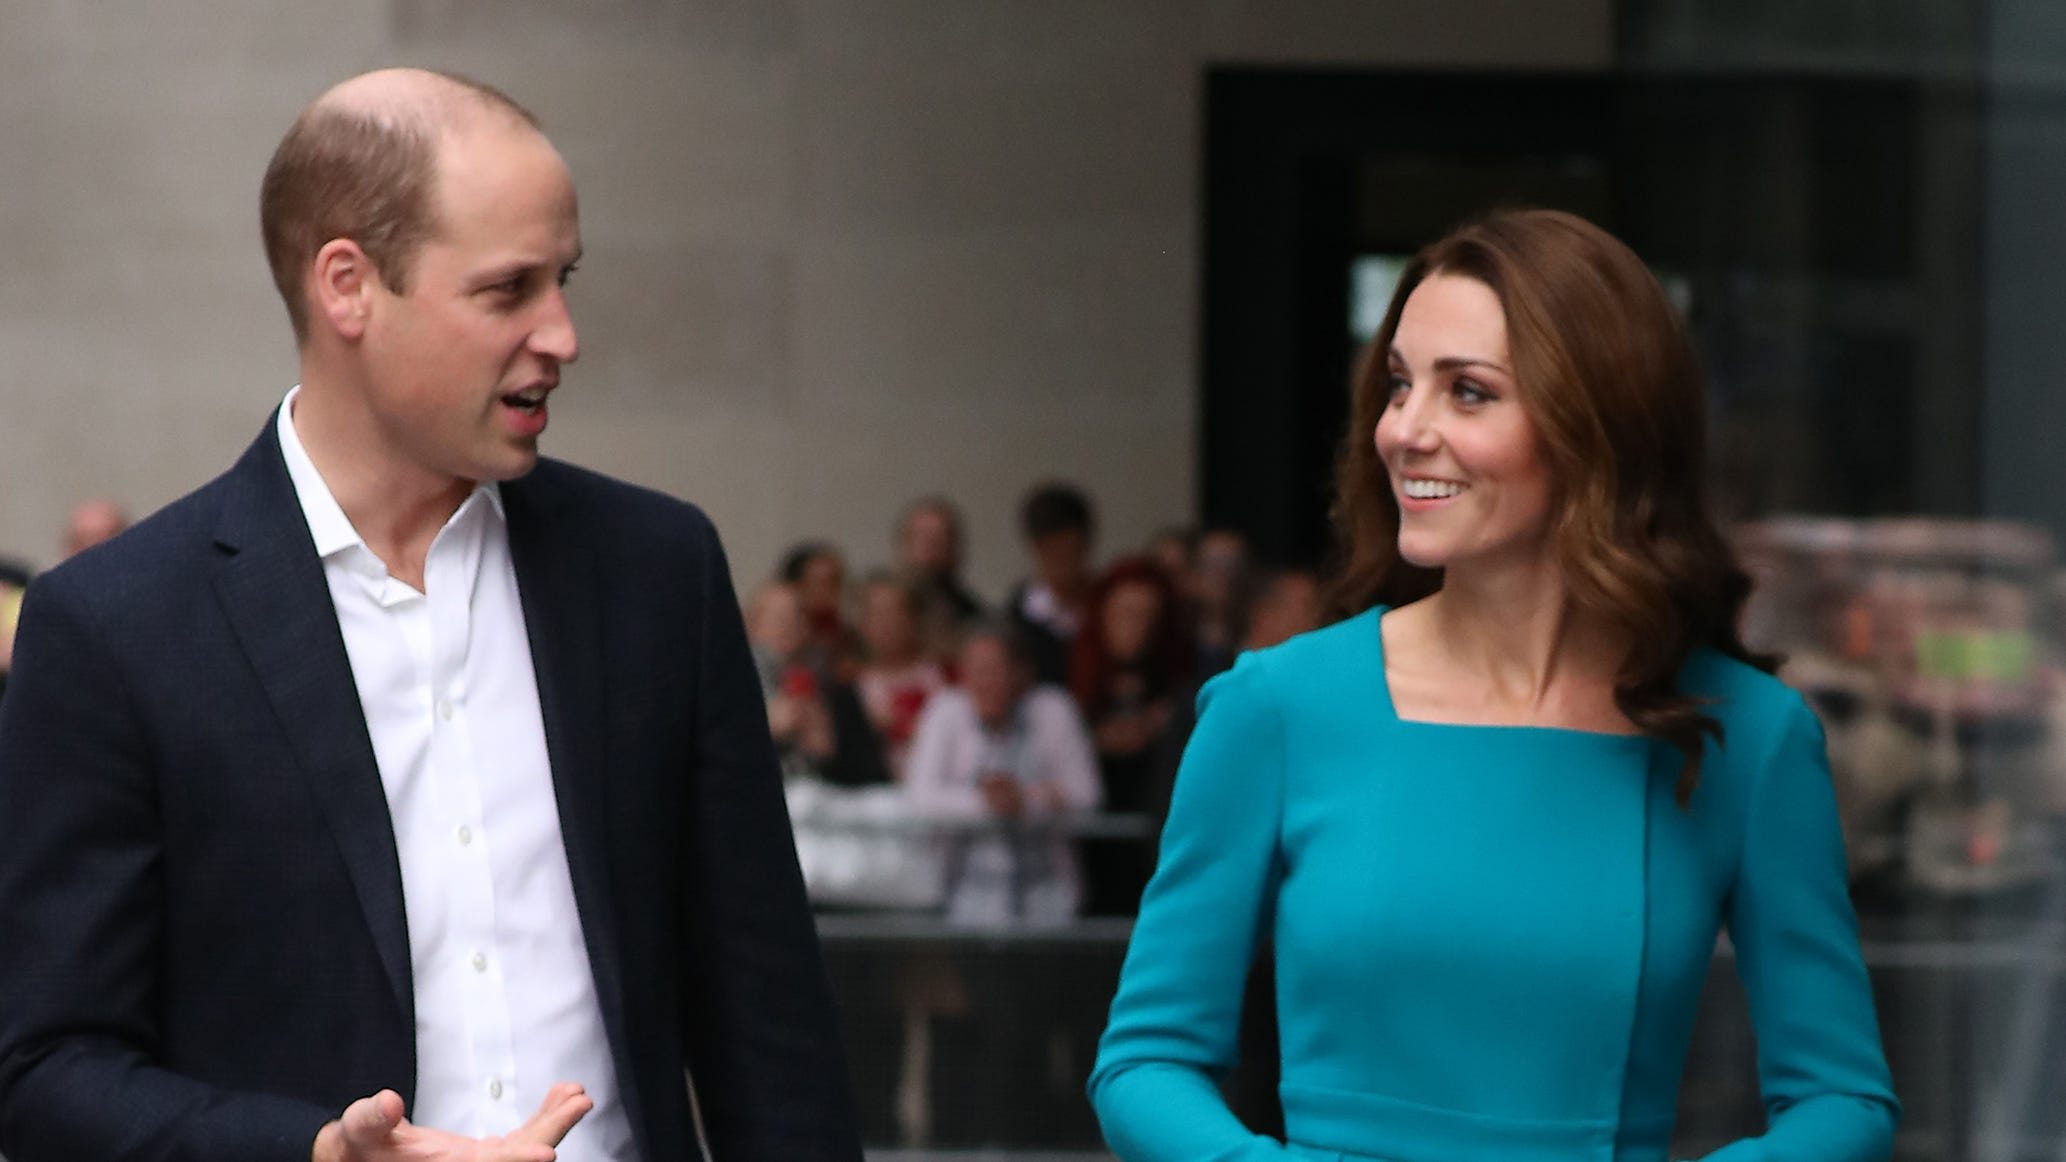 Prince William and Duchess Kate tackle cyberbullying: It's a 'very real concern'